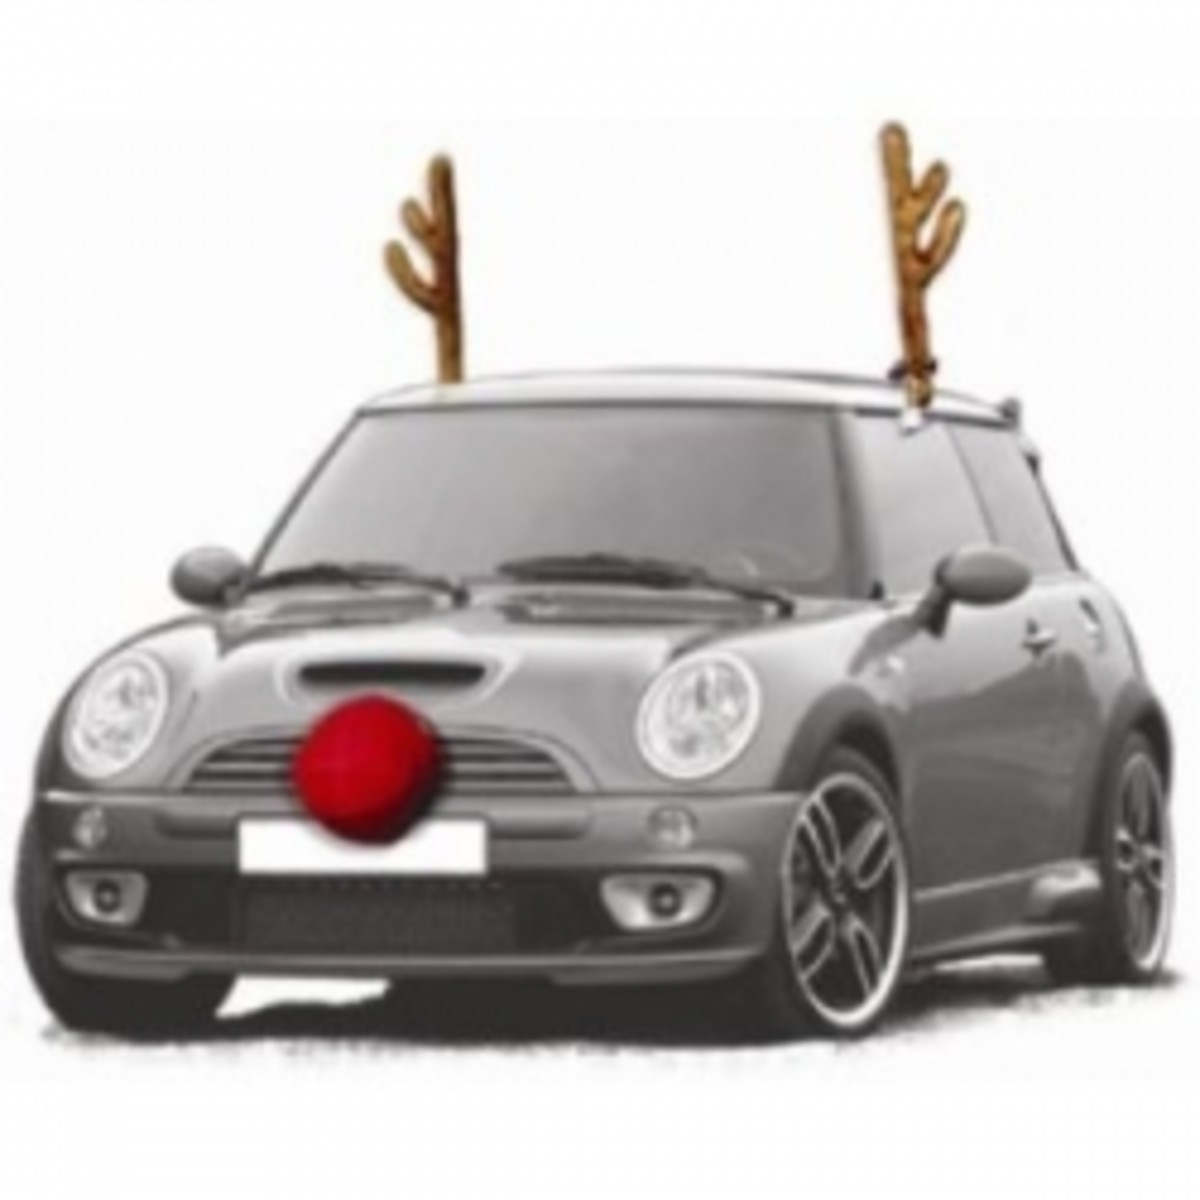 Car Reindeer Antlers and Nose and Other Christmas Car Decorations